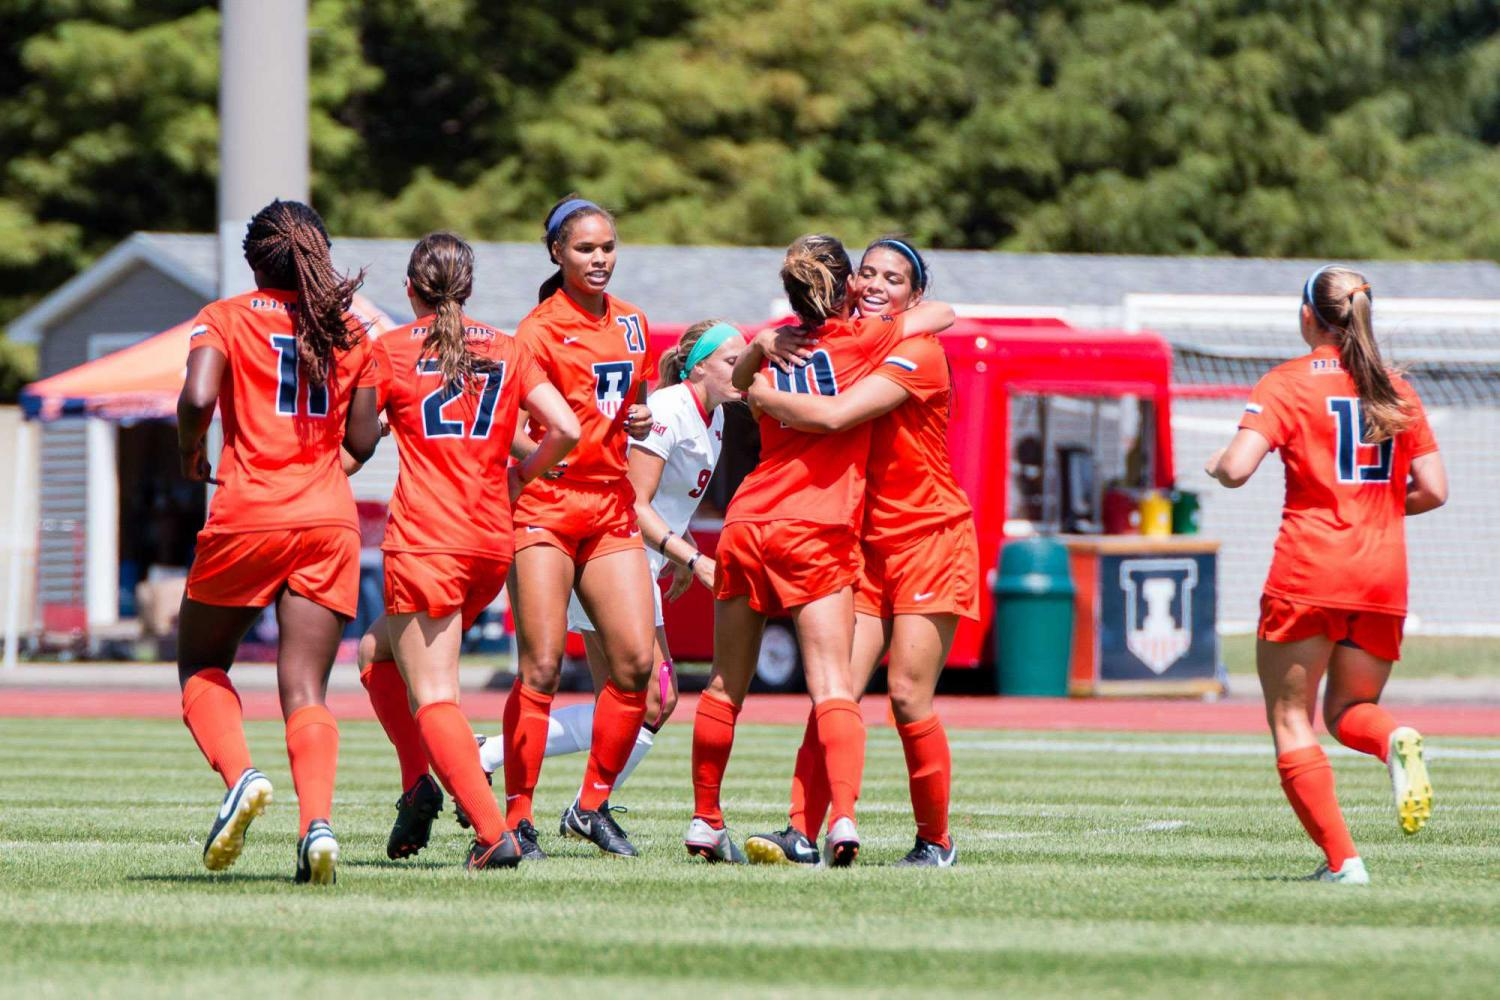 Illinois' Allison Stucky gets a hug from Alicia Barker after scoring the only goal in the game against Illinois State at Illnois Soccer Stadium on Aug. 21, 2016.